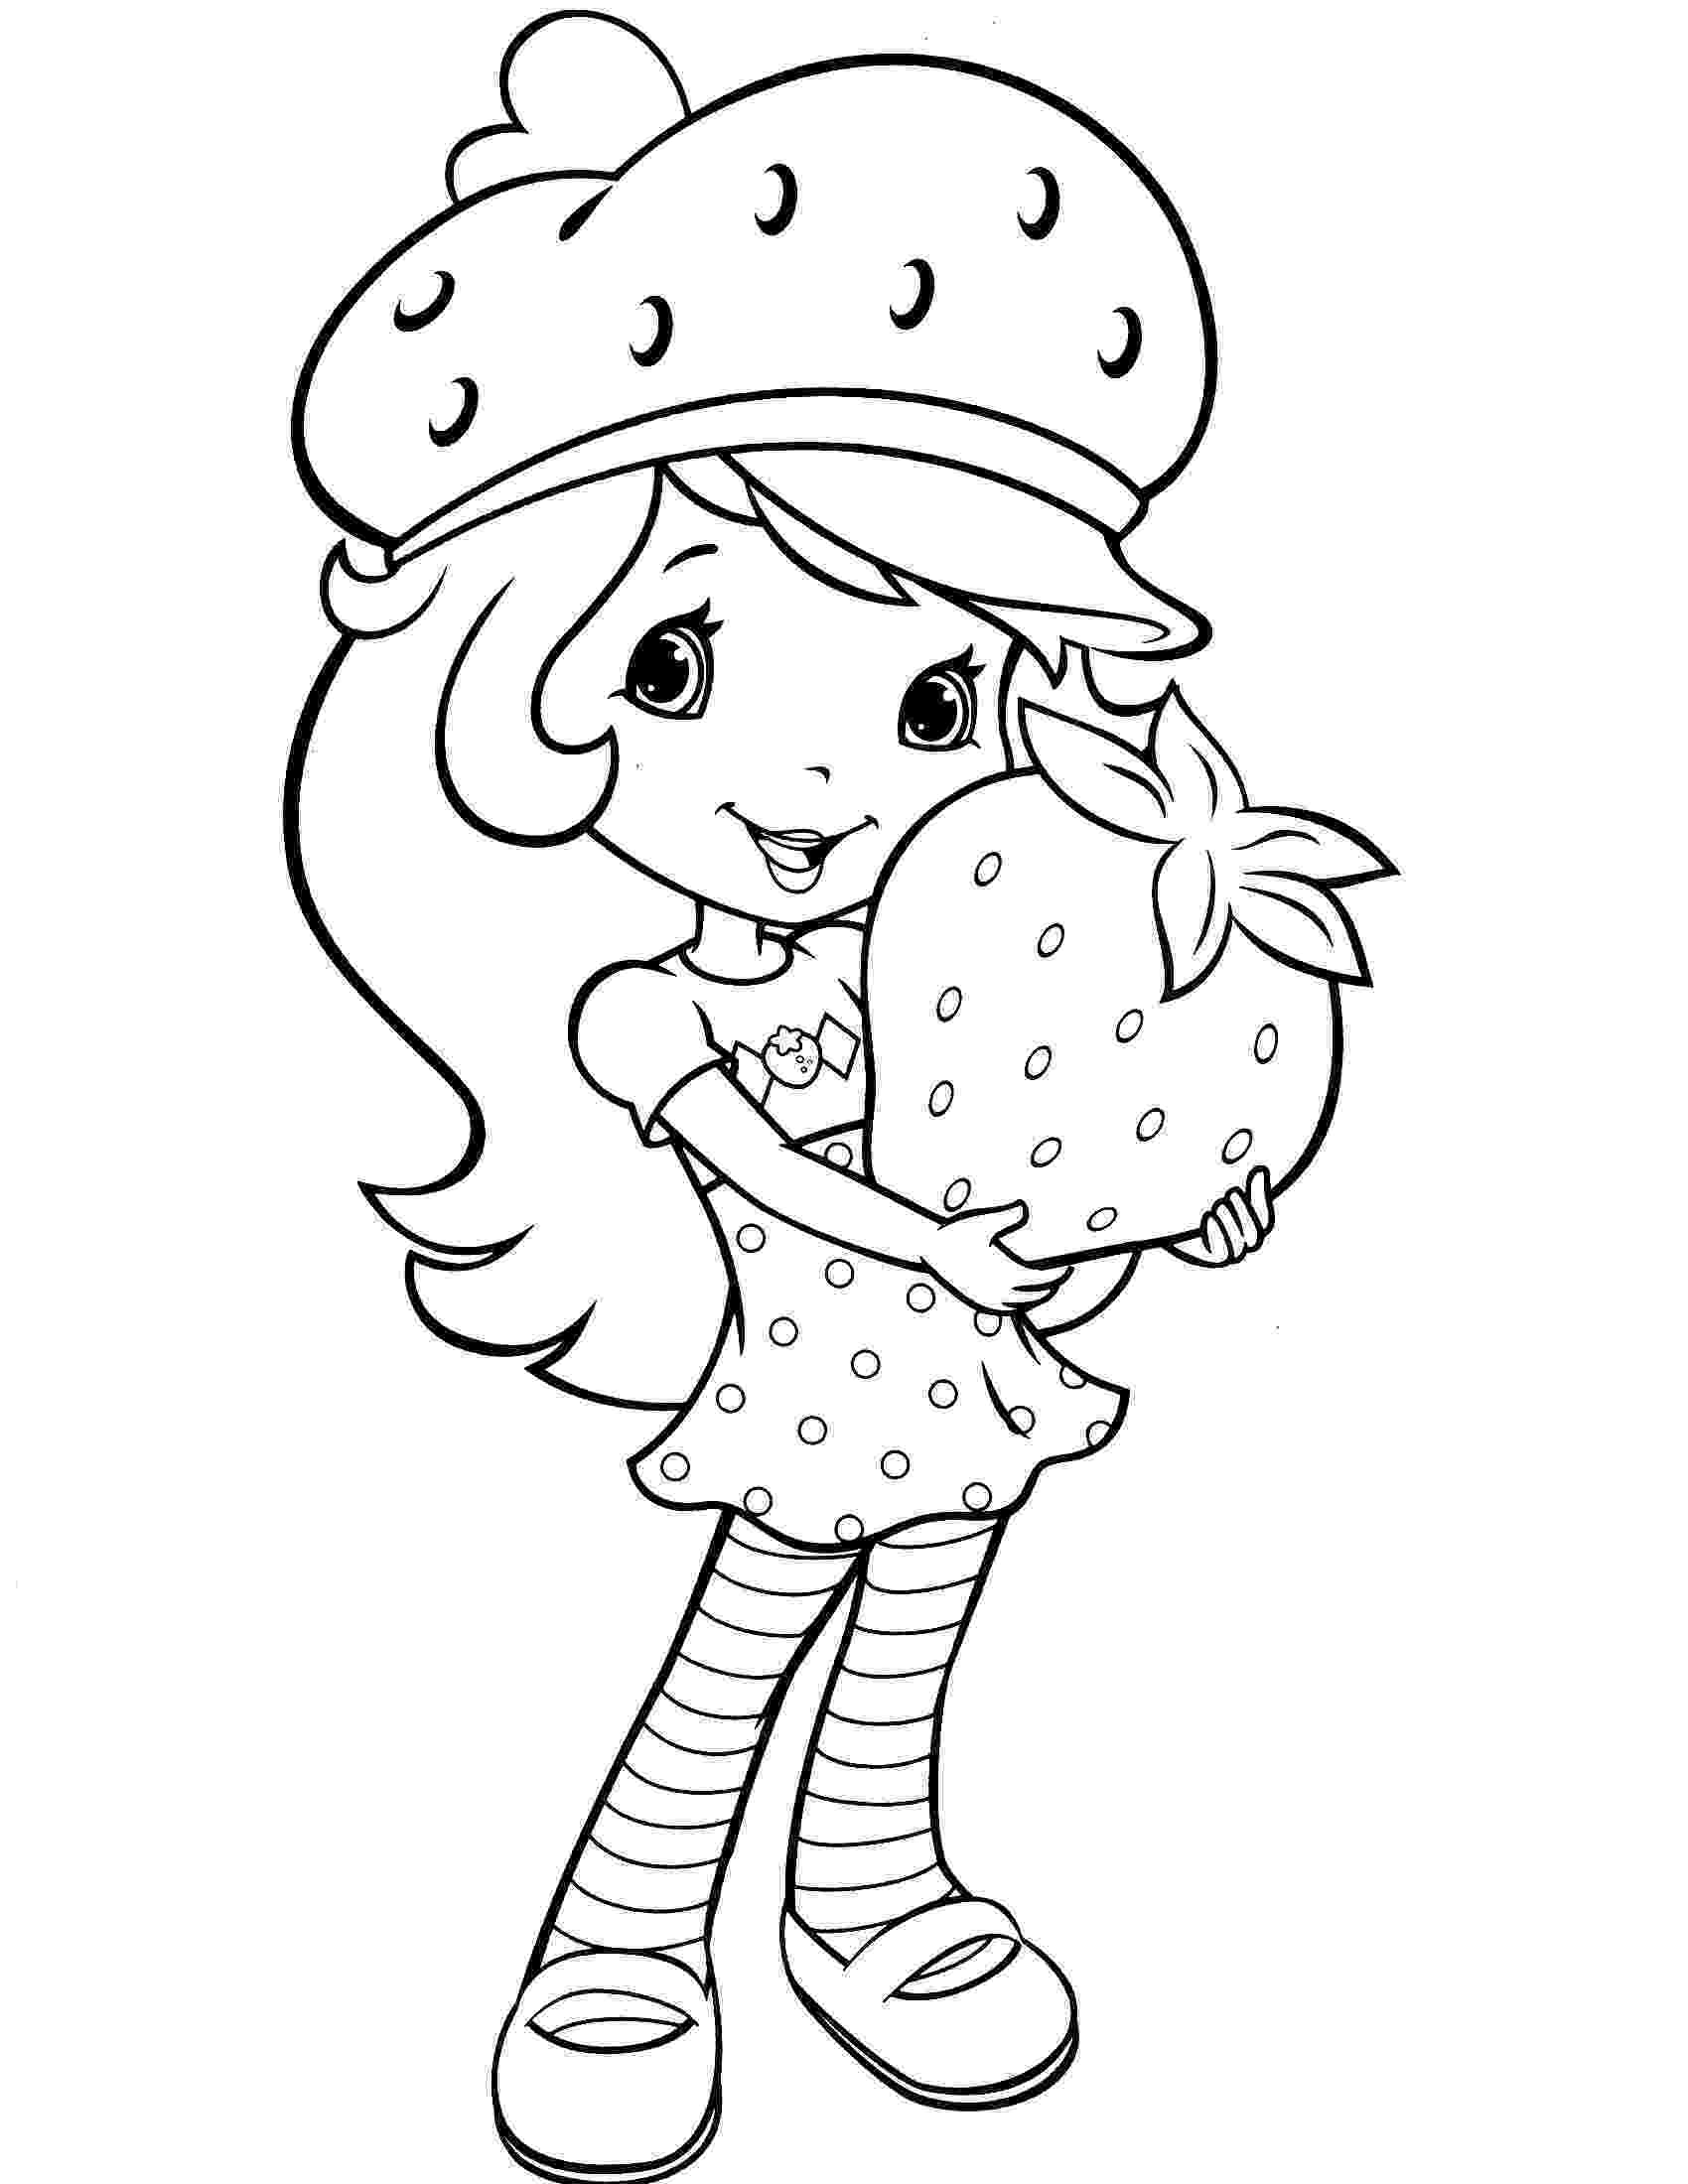 pictures of strawberry shortcake strawberry coloring pages best coloring pages for kids of shortcake pictures strawberry